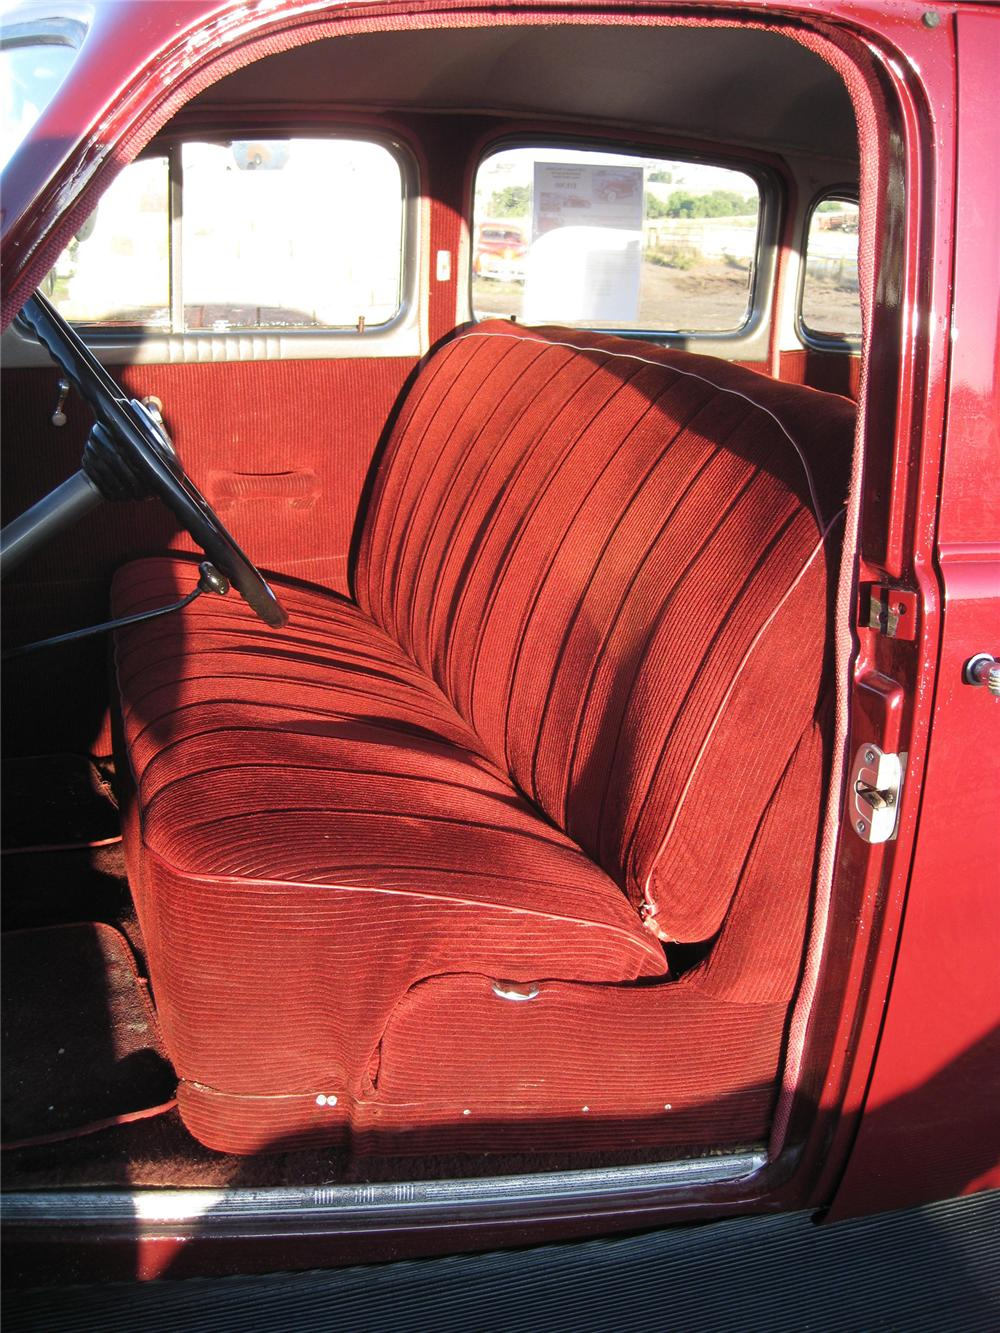 1938 PONTIAC 4 DOOR SEDAN - Interior - 79647